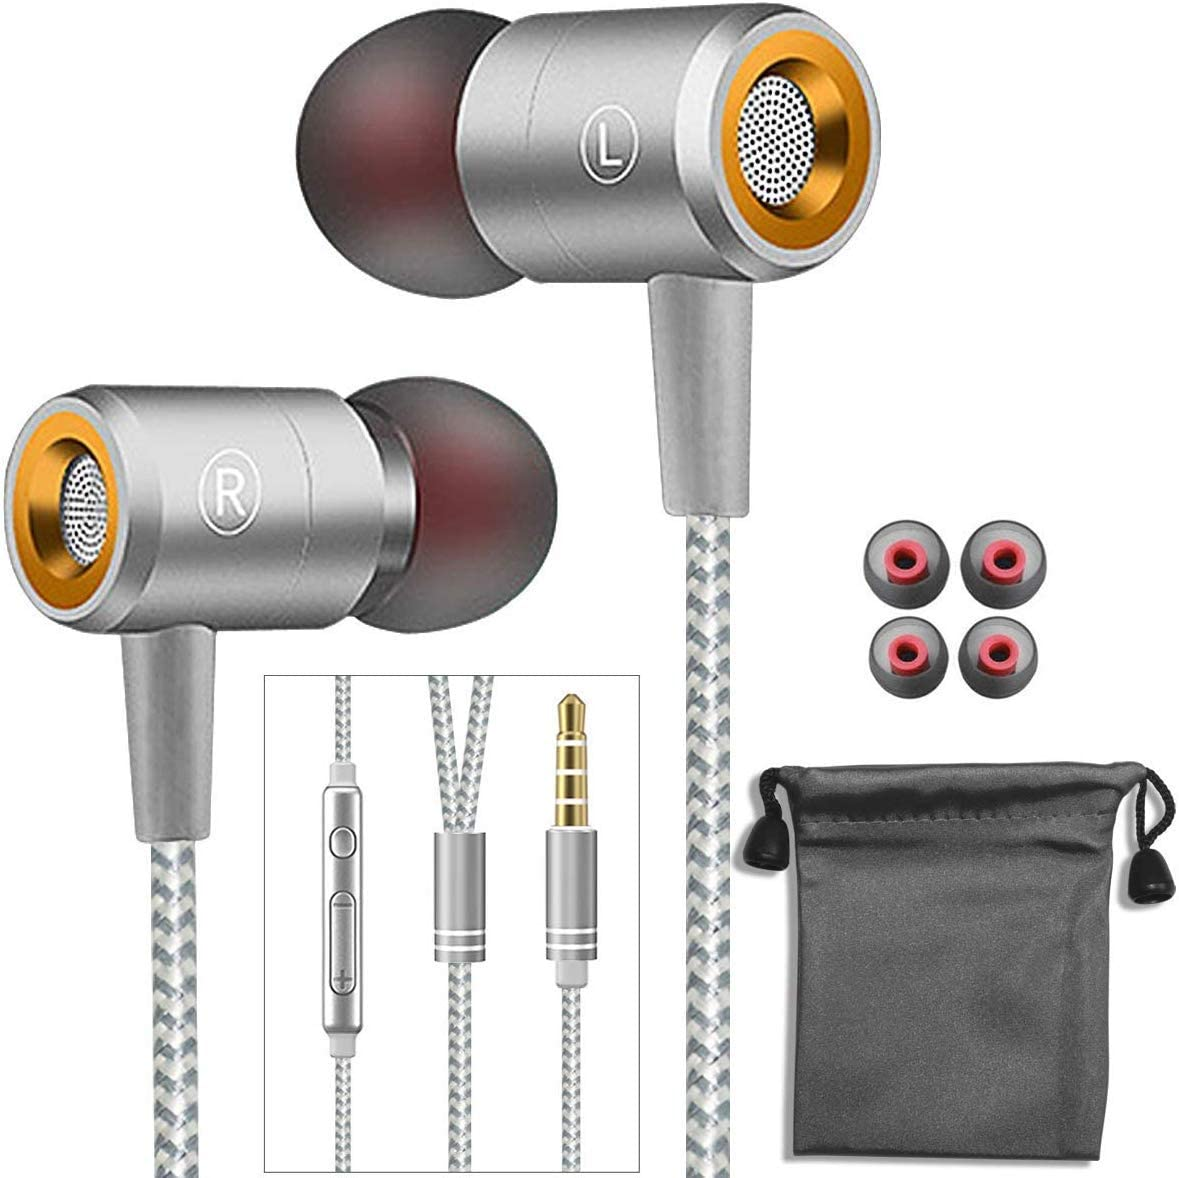 Yoshix Bluetooth Earbuds, Best Wireless Headphones for Sports, Running, or Gym. Noise Cancelling Model with mic and IPX7 Sweatproof Waterproof and Secure Fit Earhooks w Travel Case